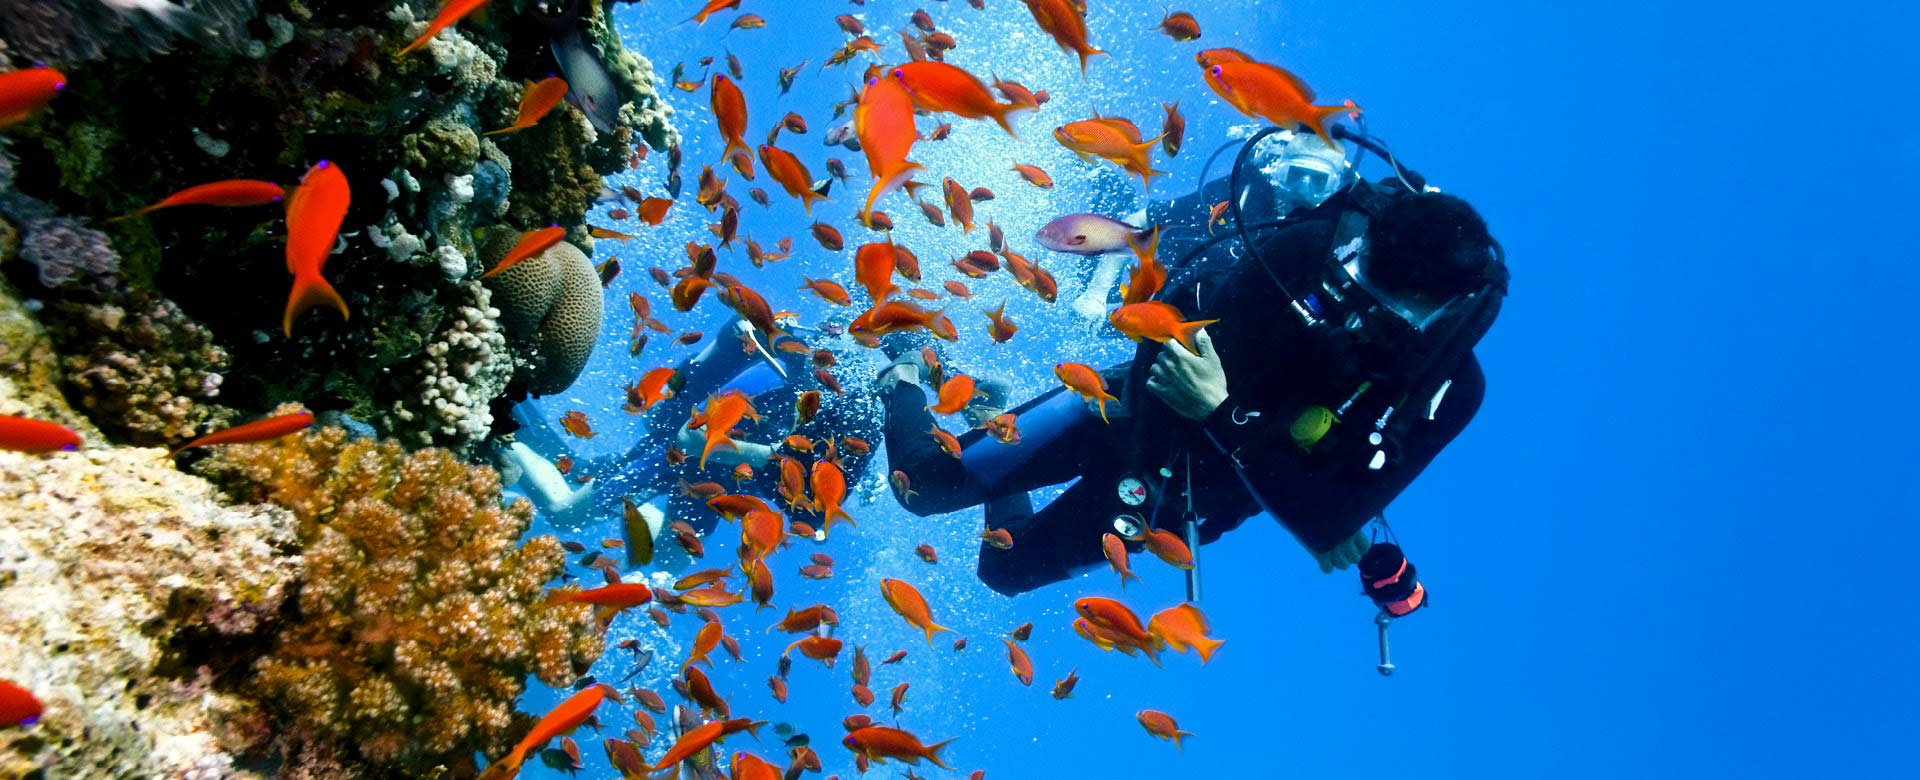 Diving in corals